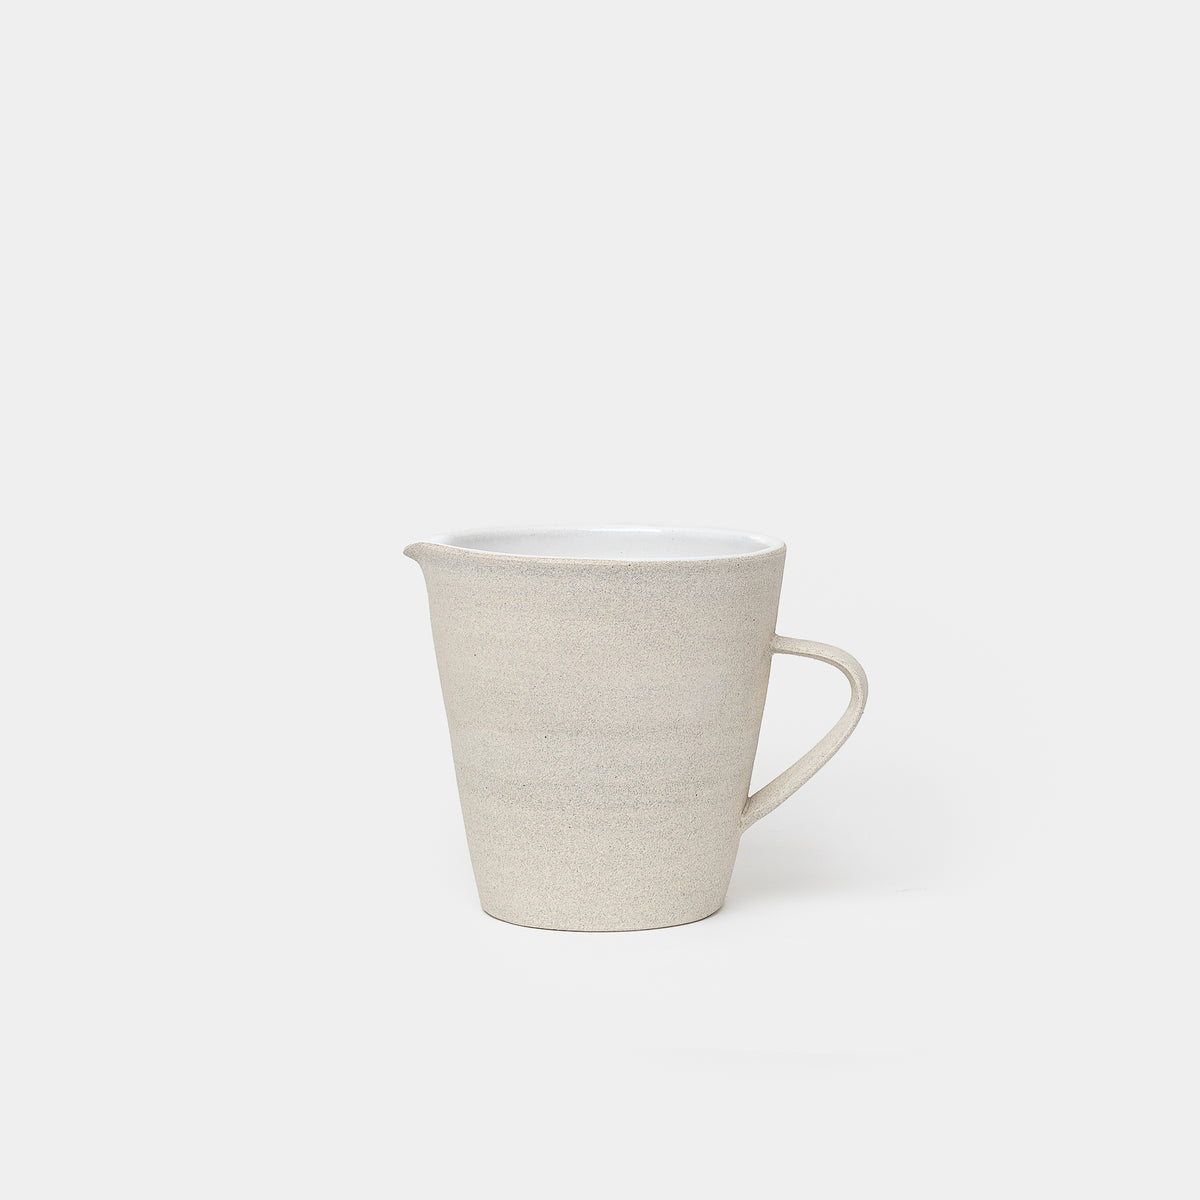 Load image into Gallery viewer, Vermont Pitcher - Medium - Ceramics - Artist – Shoppe Amber Interiors